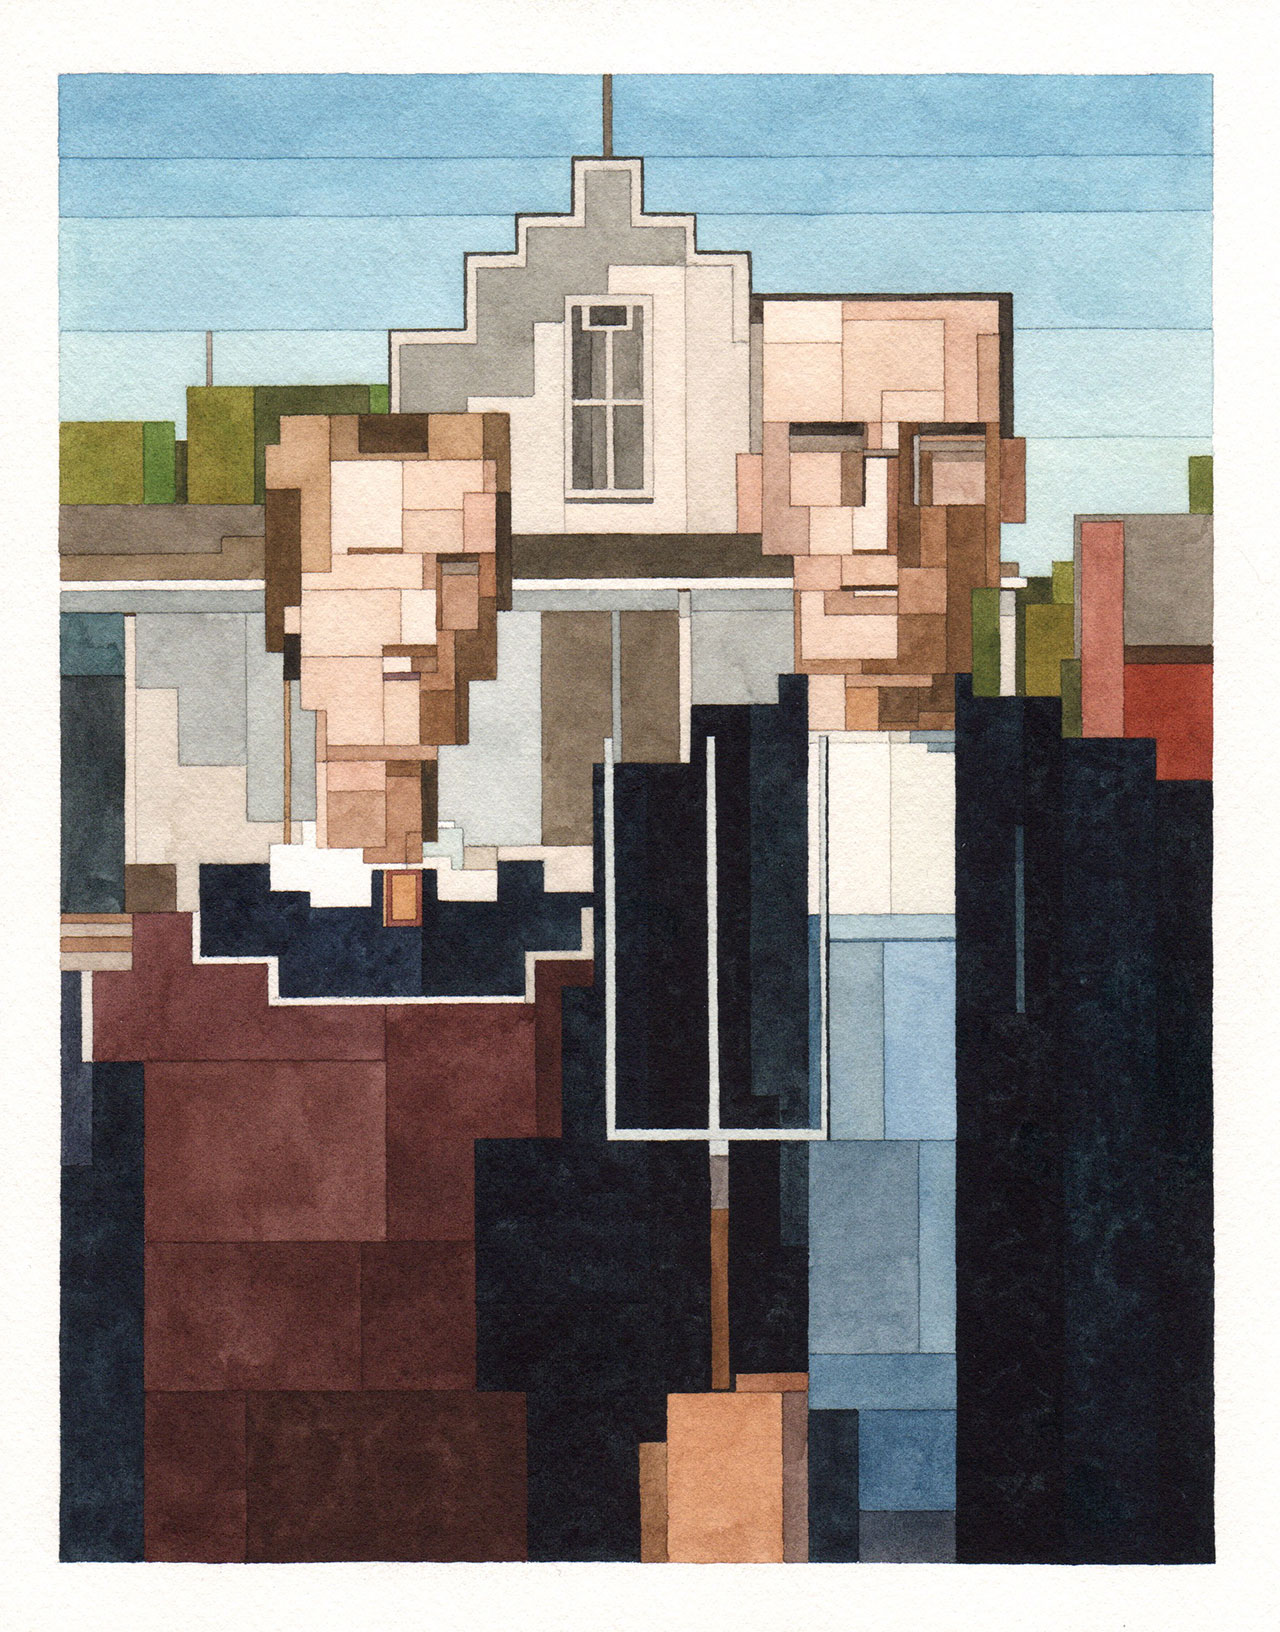 American Gothic, Art History 101 series by Adam Lister.(Original Painting by Grant Wood, 1930).